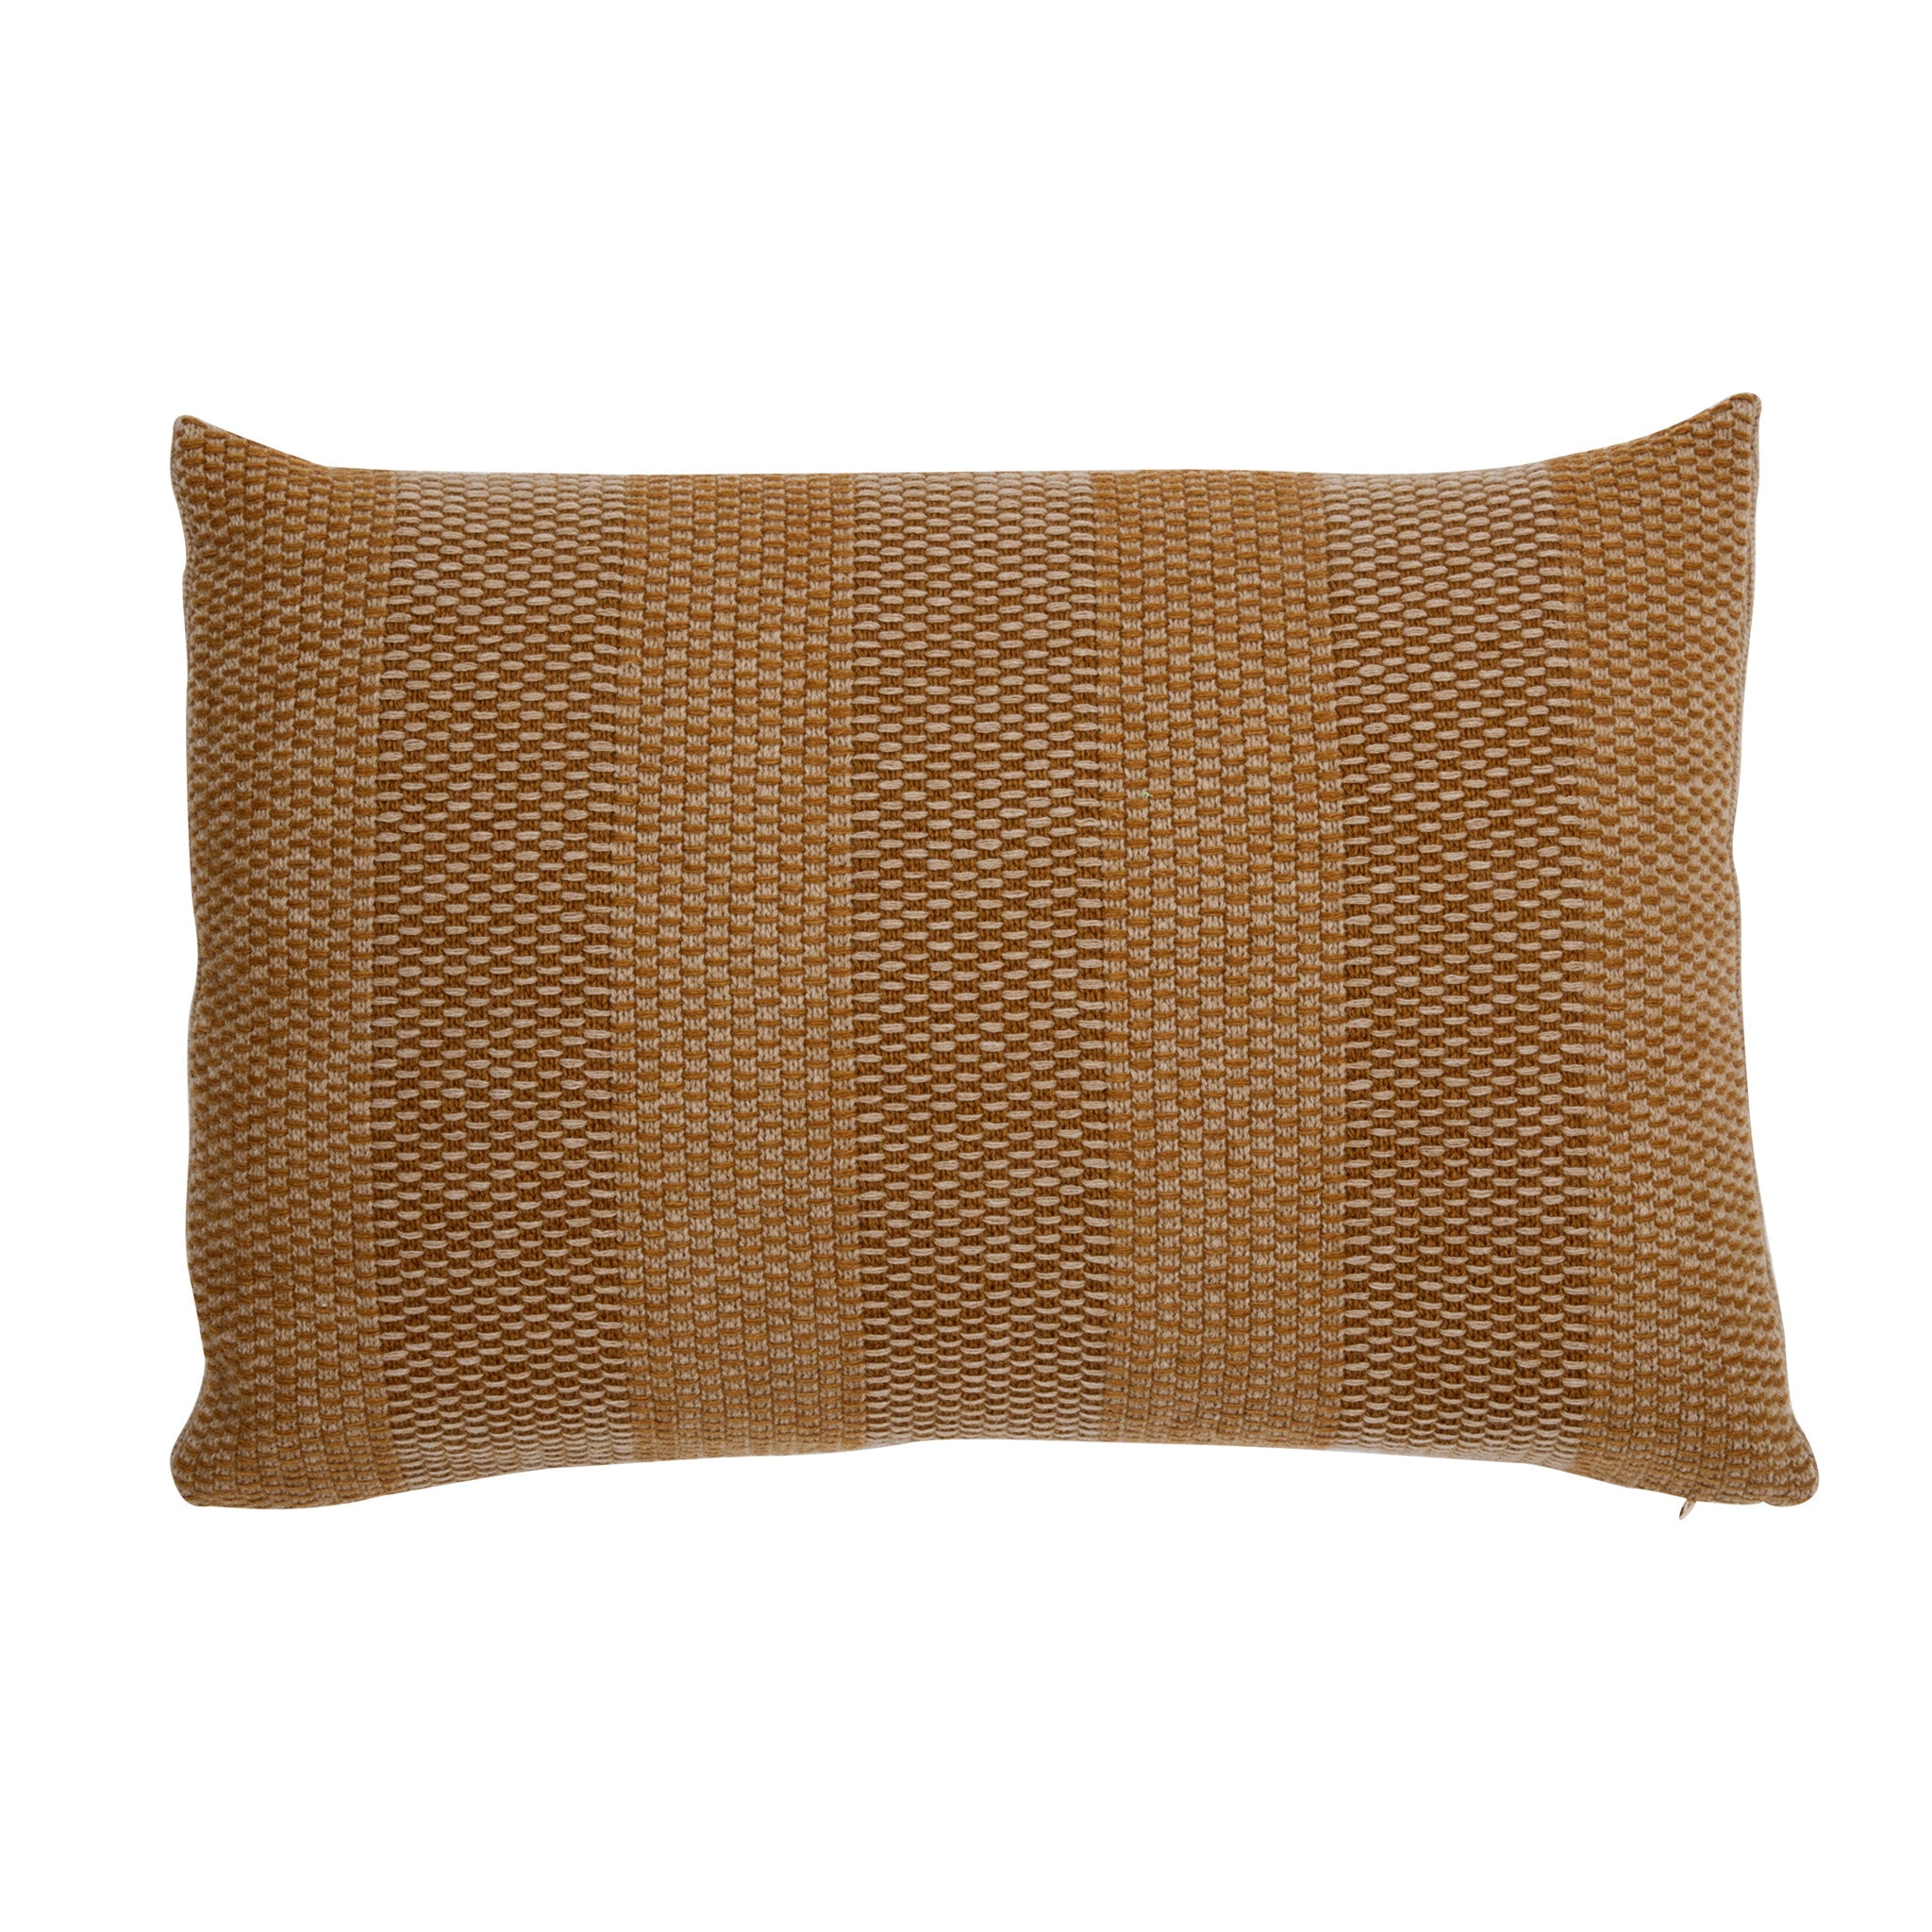 Weave Knit cushion, sand